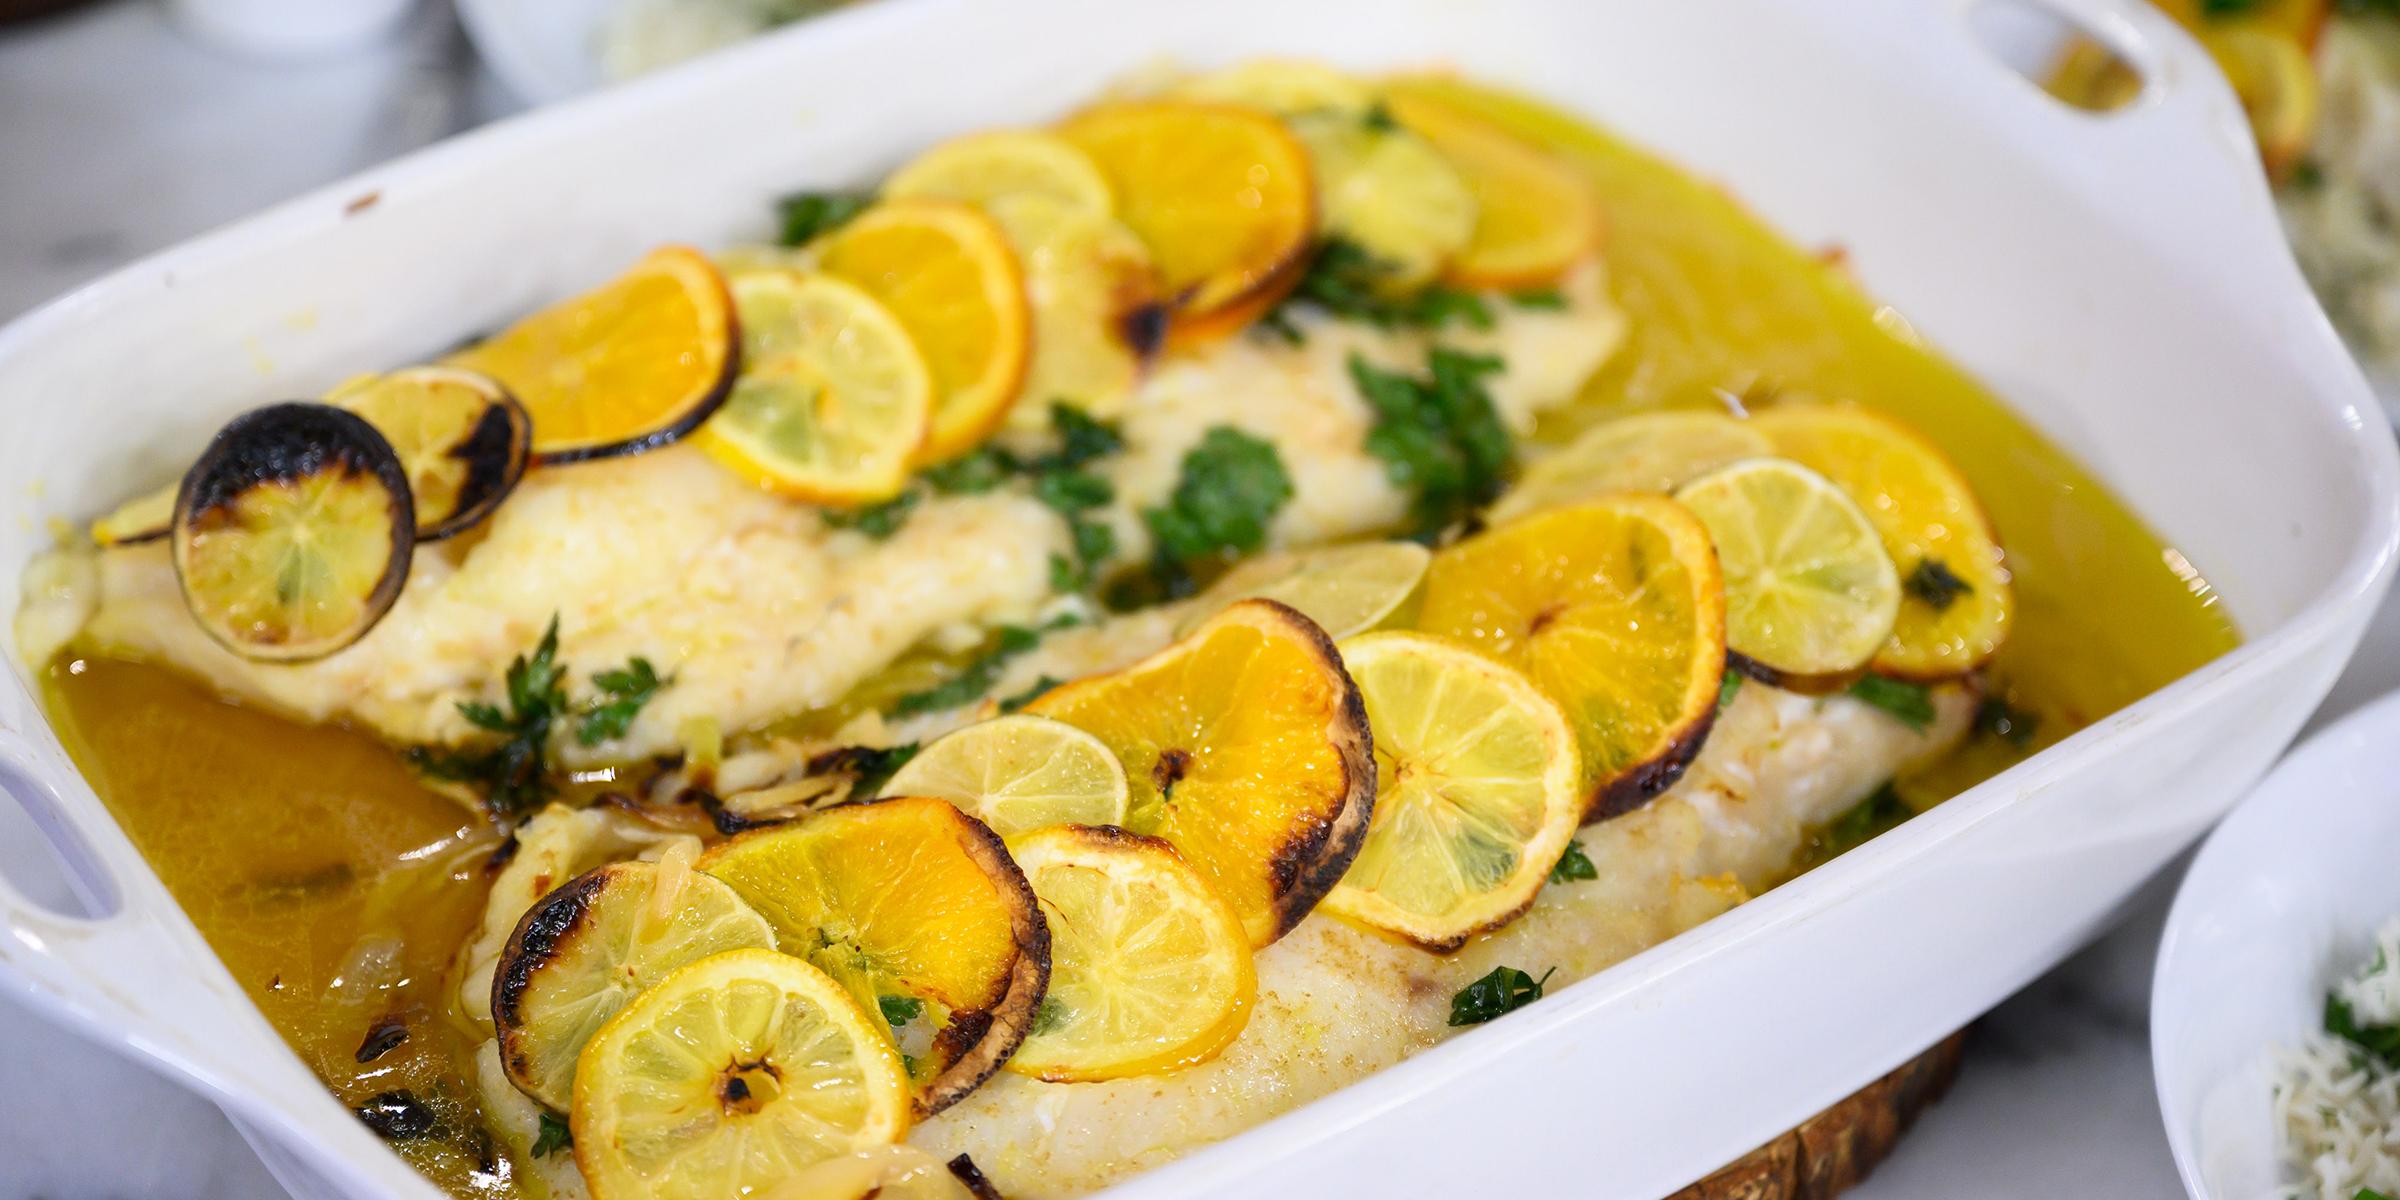 Grilled Striped Bass Recipes Barefoot Contessa citrus baked cod